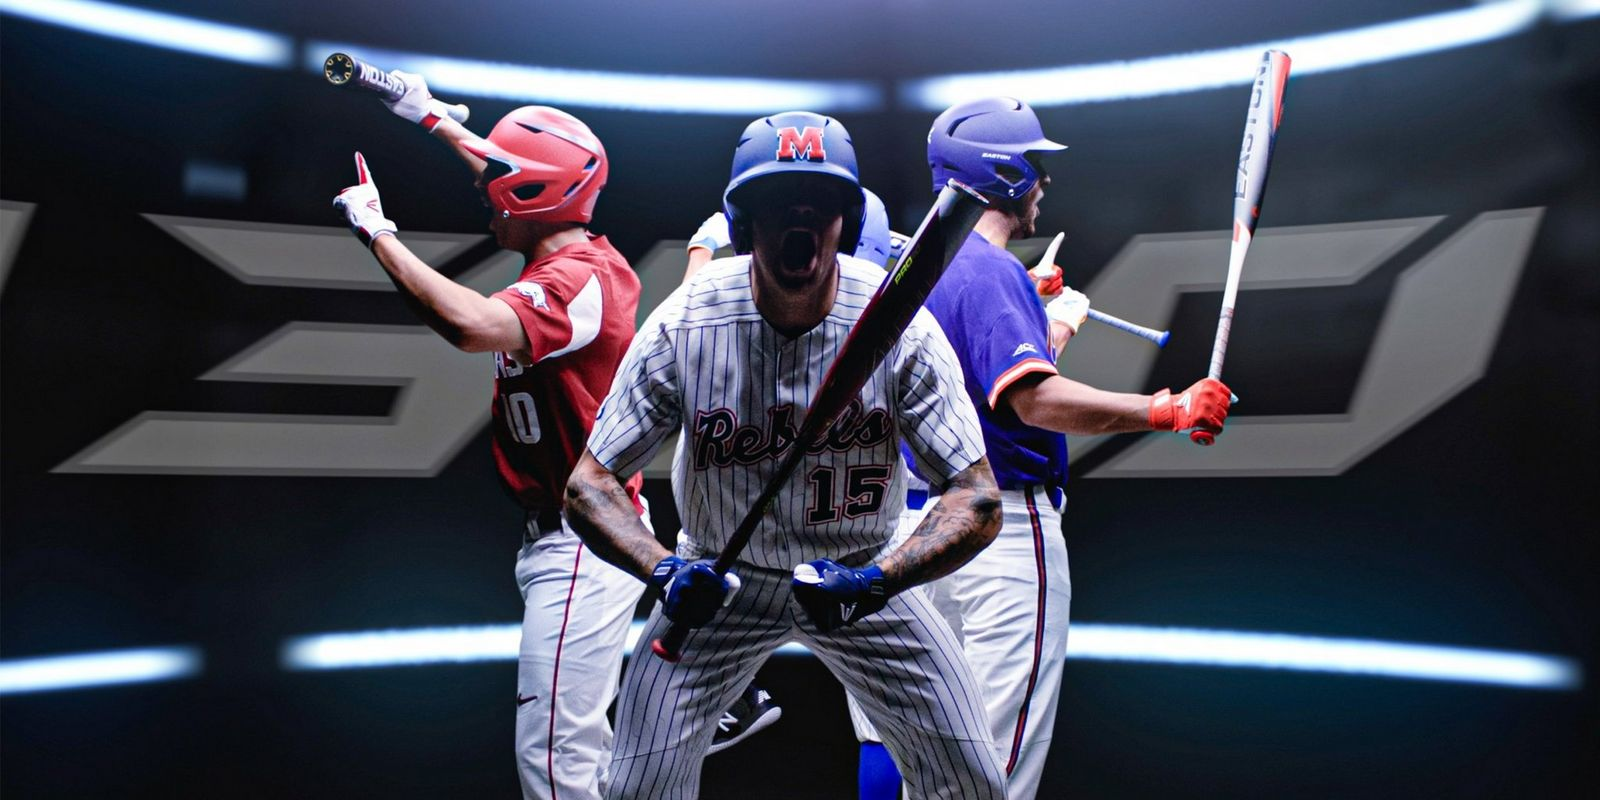 Easton Official Online Store | Shop Baseball, Fastpitch and